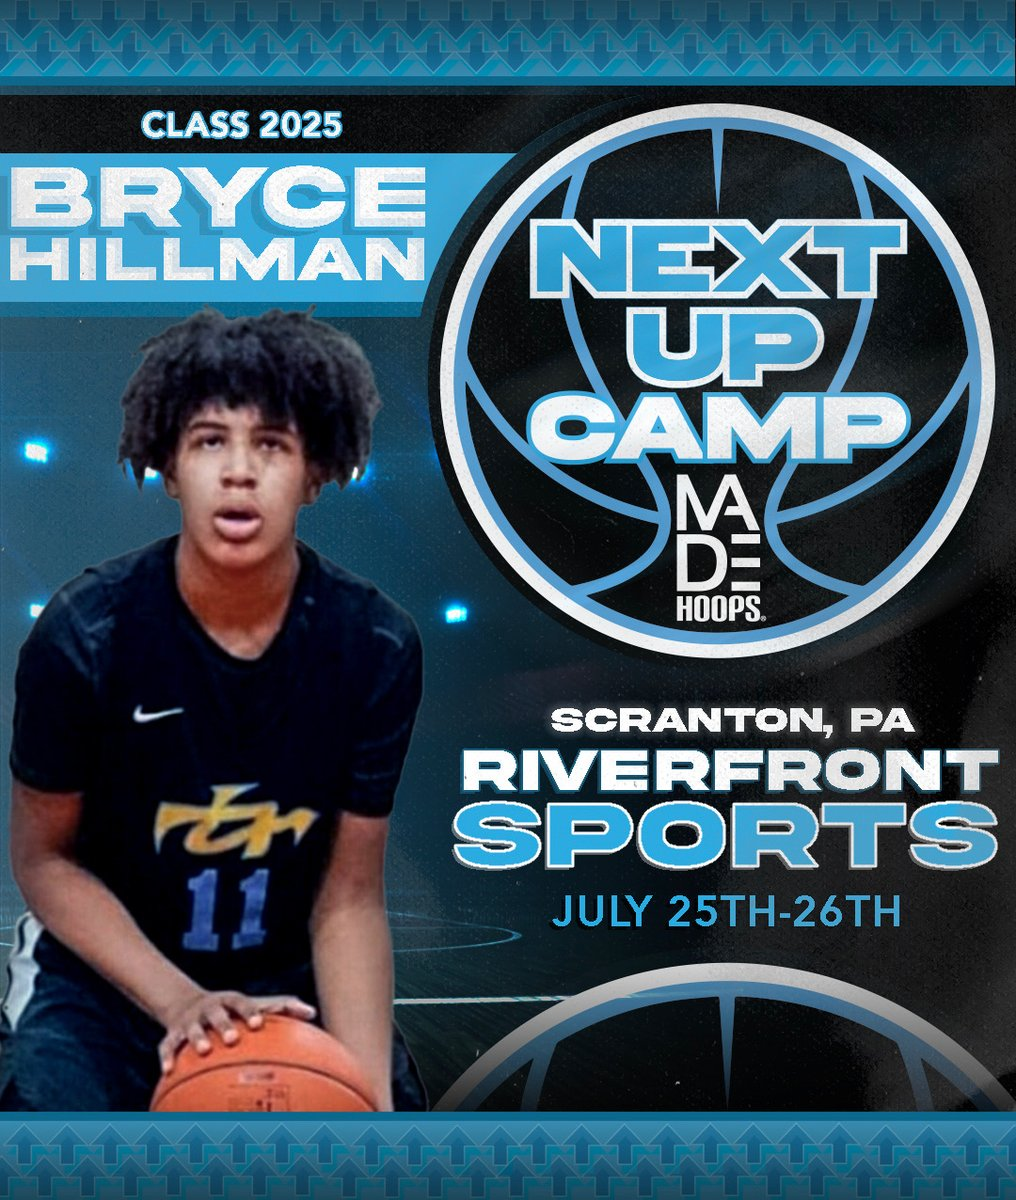 2025 Bryce Hillman is LOCKED IN 🔐 and ready to show out at Next Up Camp in July! 💪 • Are YOU Next Up? It's time to #CreateYourName. • 🗓: July 11th-12th, 18th-19th, & 25th-26th ⛹️: Classes 2021-2026 🏟: Riverfront Sports 📍: Scranton, PA 🎥: All games live-streamed https://t.co/hAK3Hi9A8K